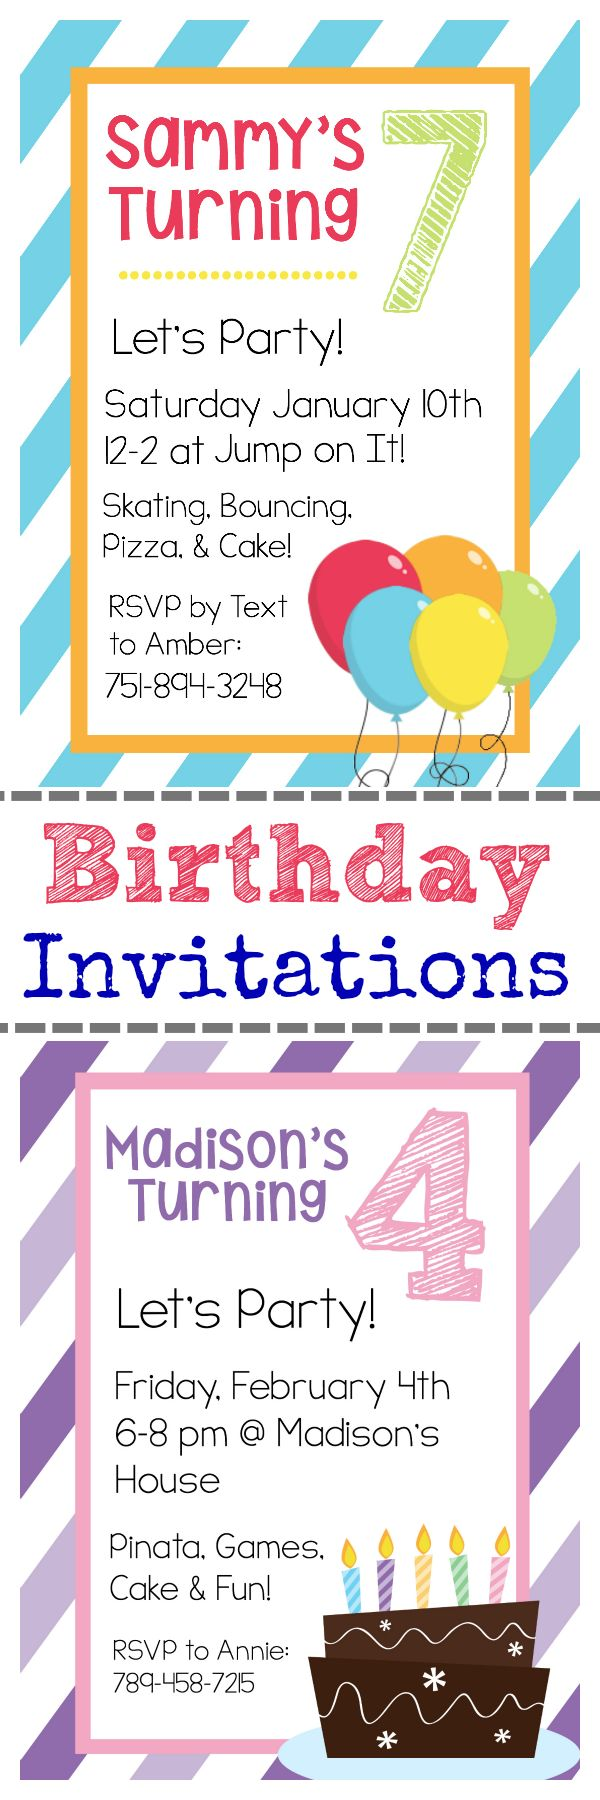 Best 25 Free birthday invitations ideas – Where Can I Print Birthday Invitations